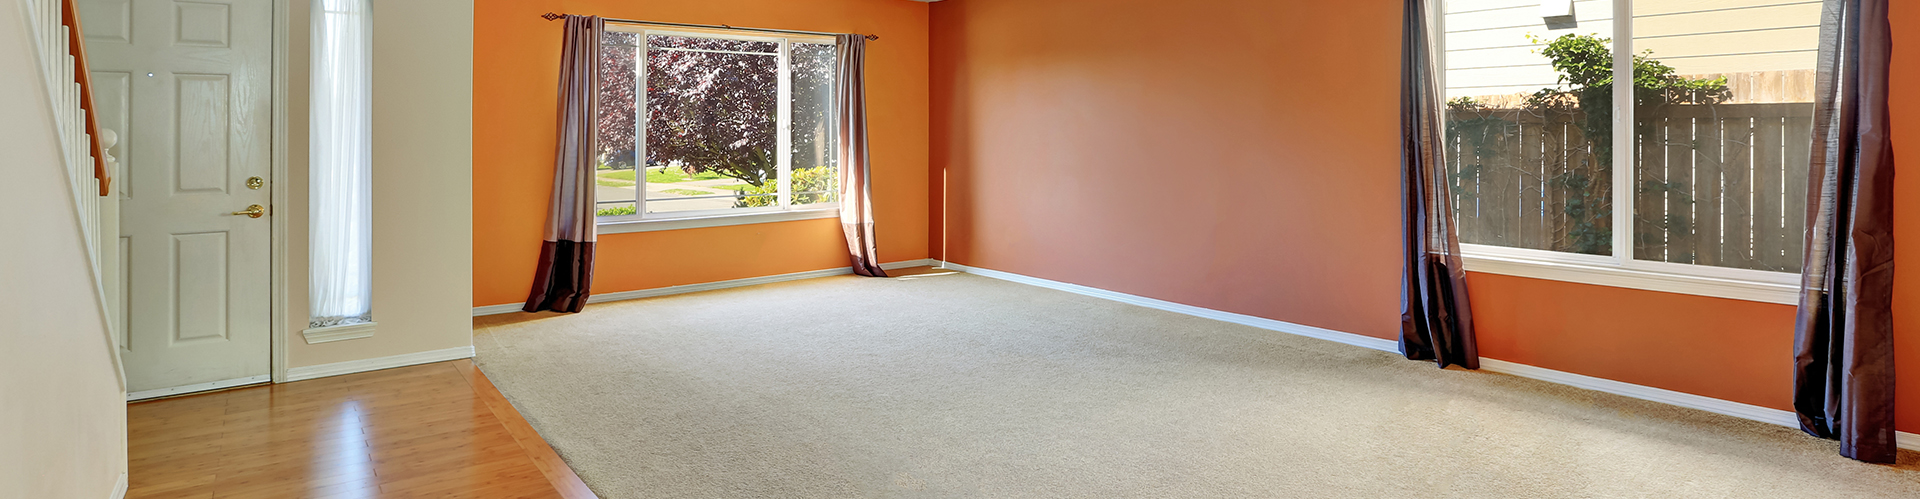 Carpeted Lounge Area | Shane's Built-In Vacuums Ltd.